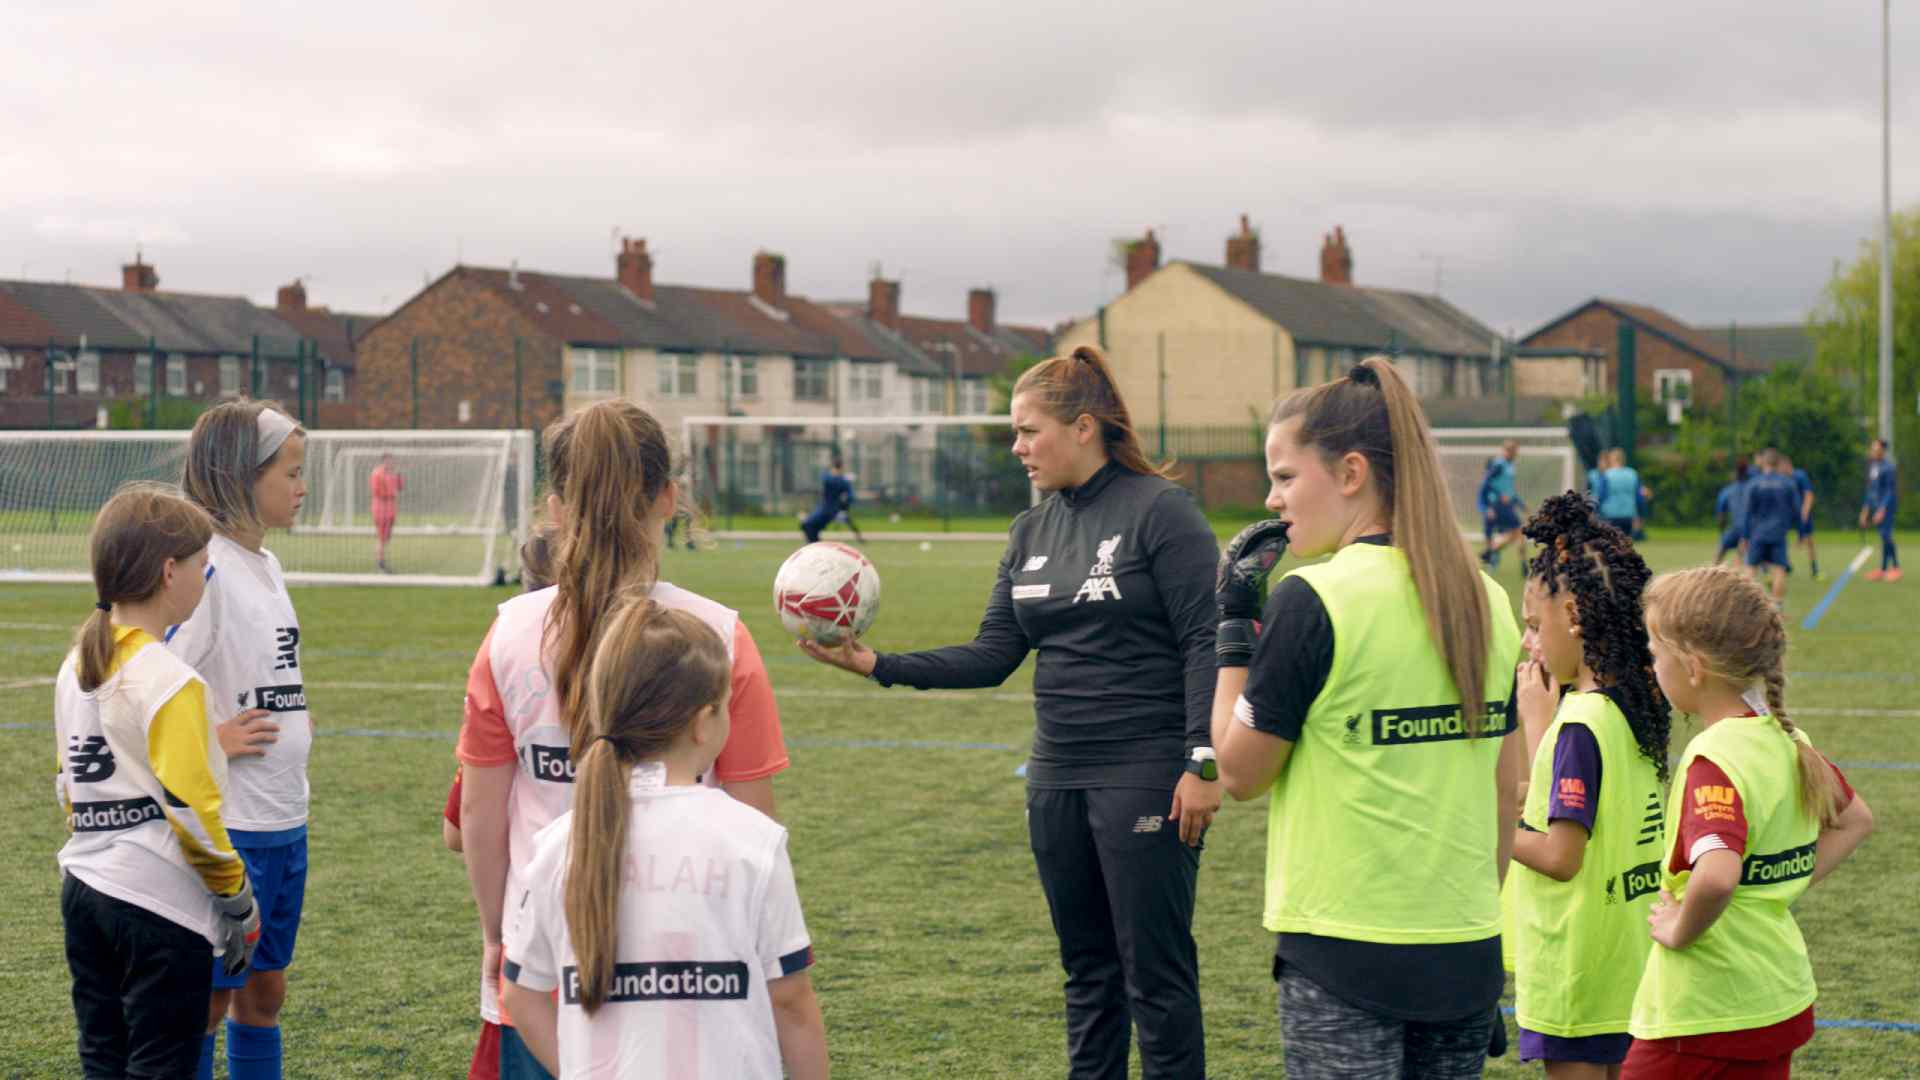 Liverpool Football Club Foundation coach talking to young girls as part of the Head Coaches programme in partnership with AXA UK